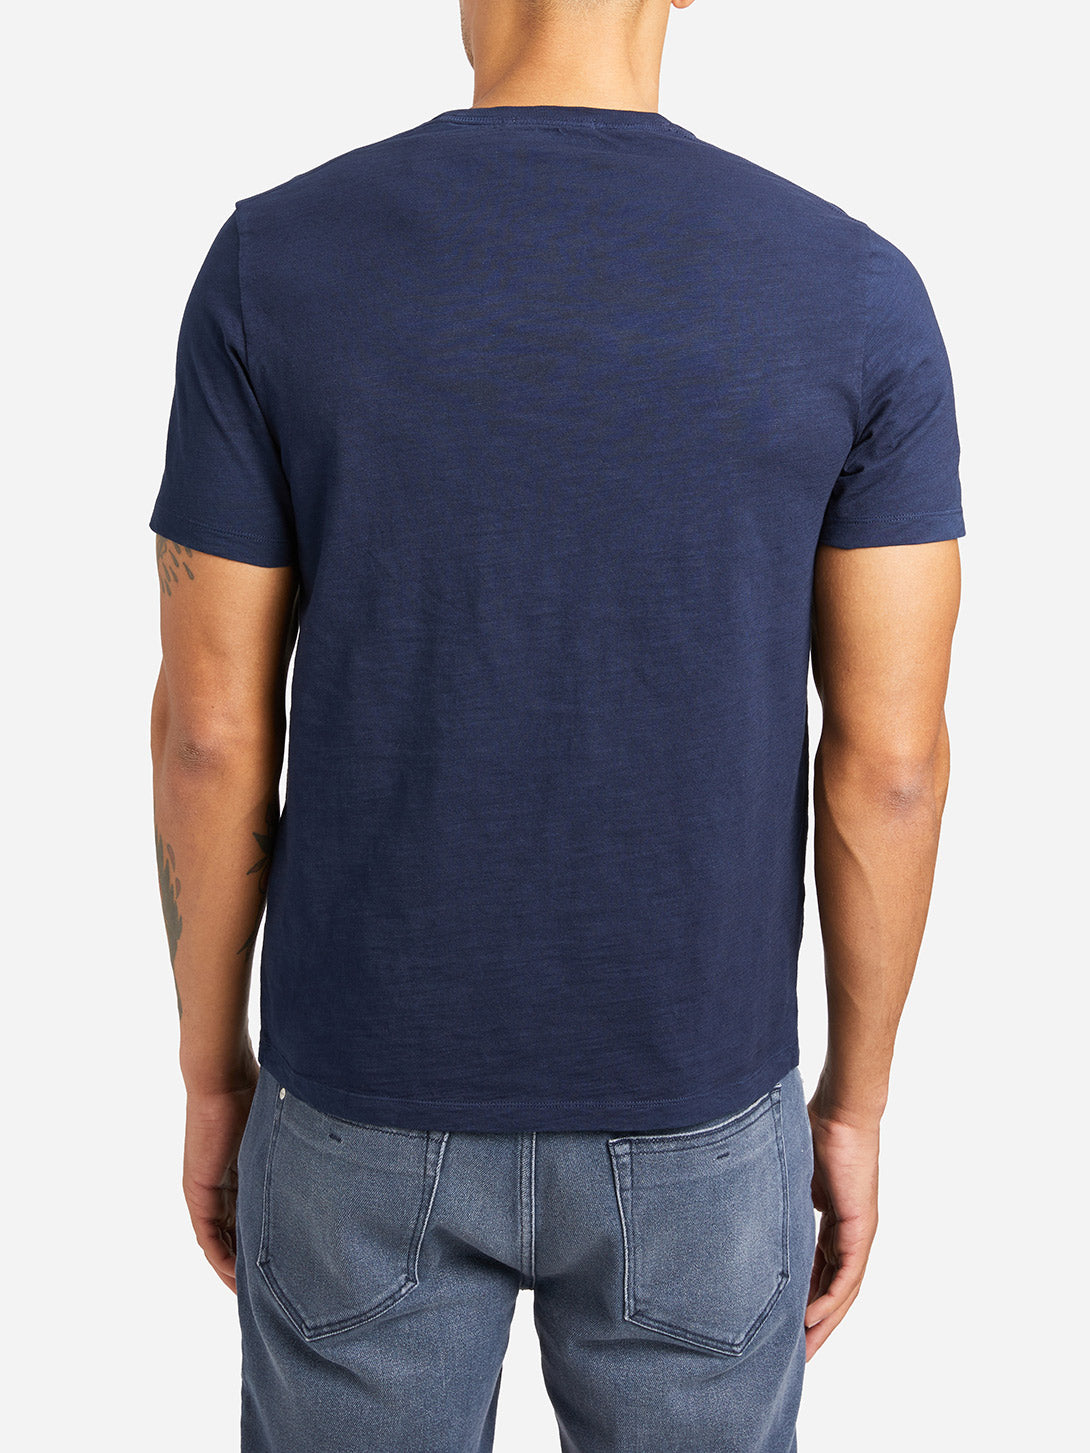 NAVY sleeve pocket crew neck t shirt bowery slub crew neck tee navy